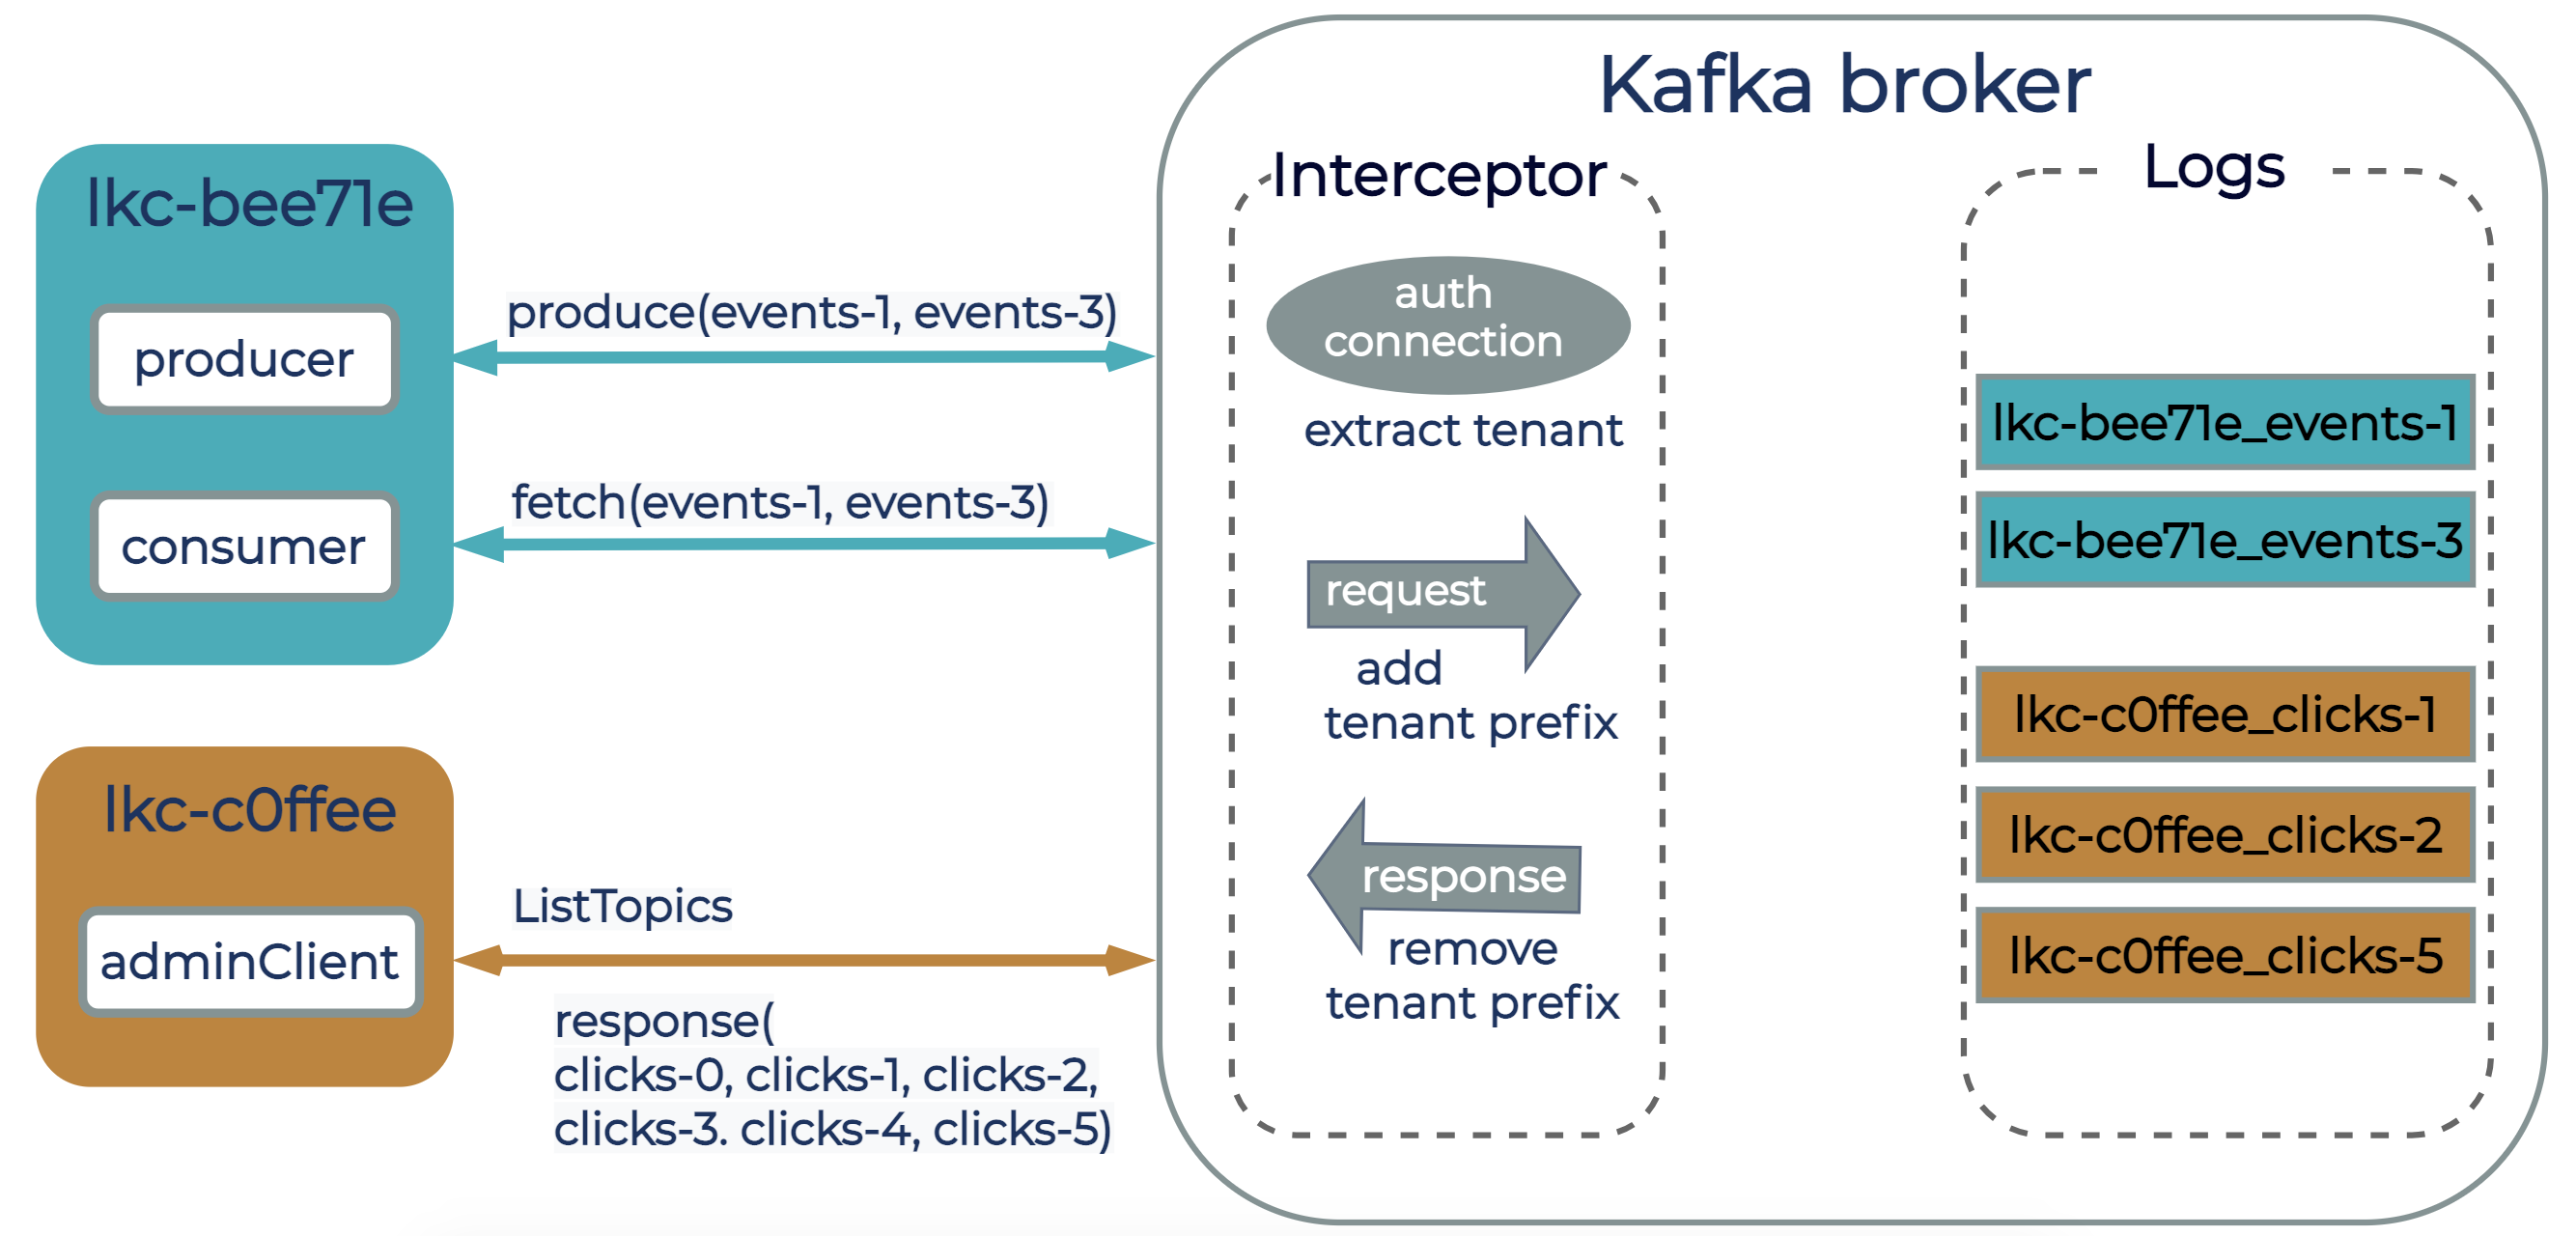 Two logical clusters, lkc-bee71e and lkc-c0ffee, with clients connected to a Kafka broker in Confluent Cloud